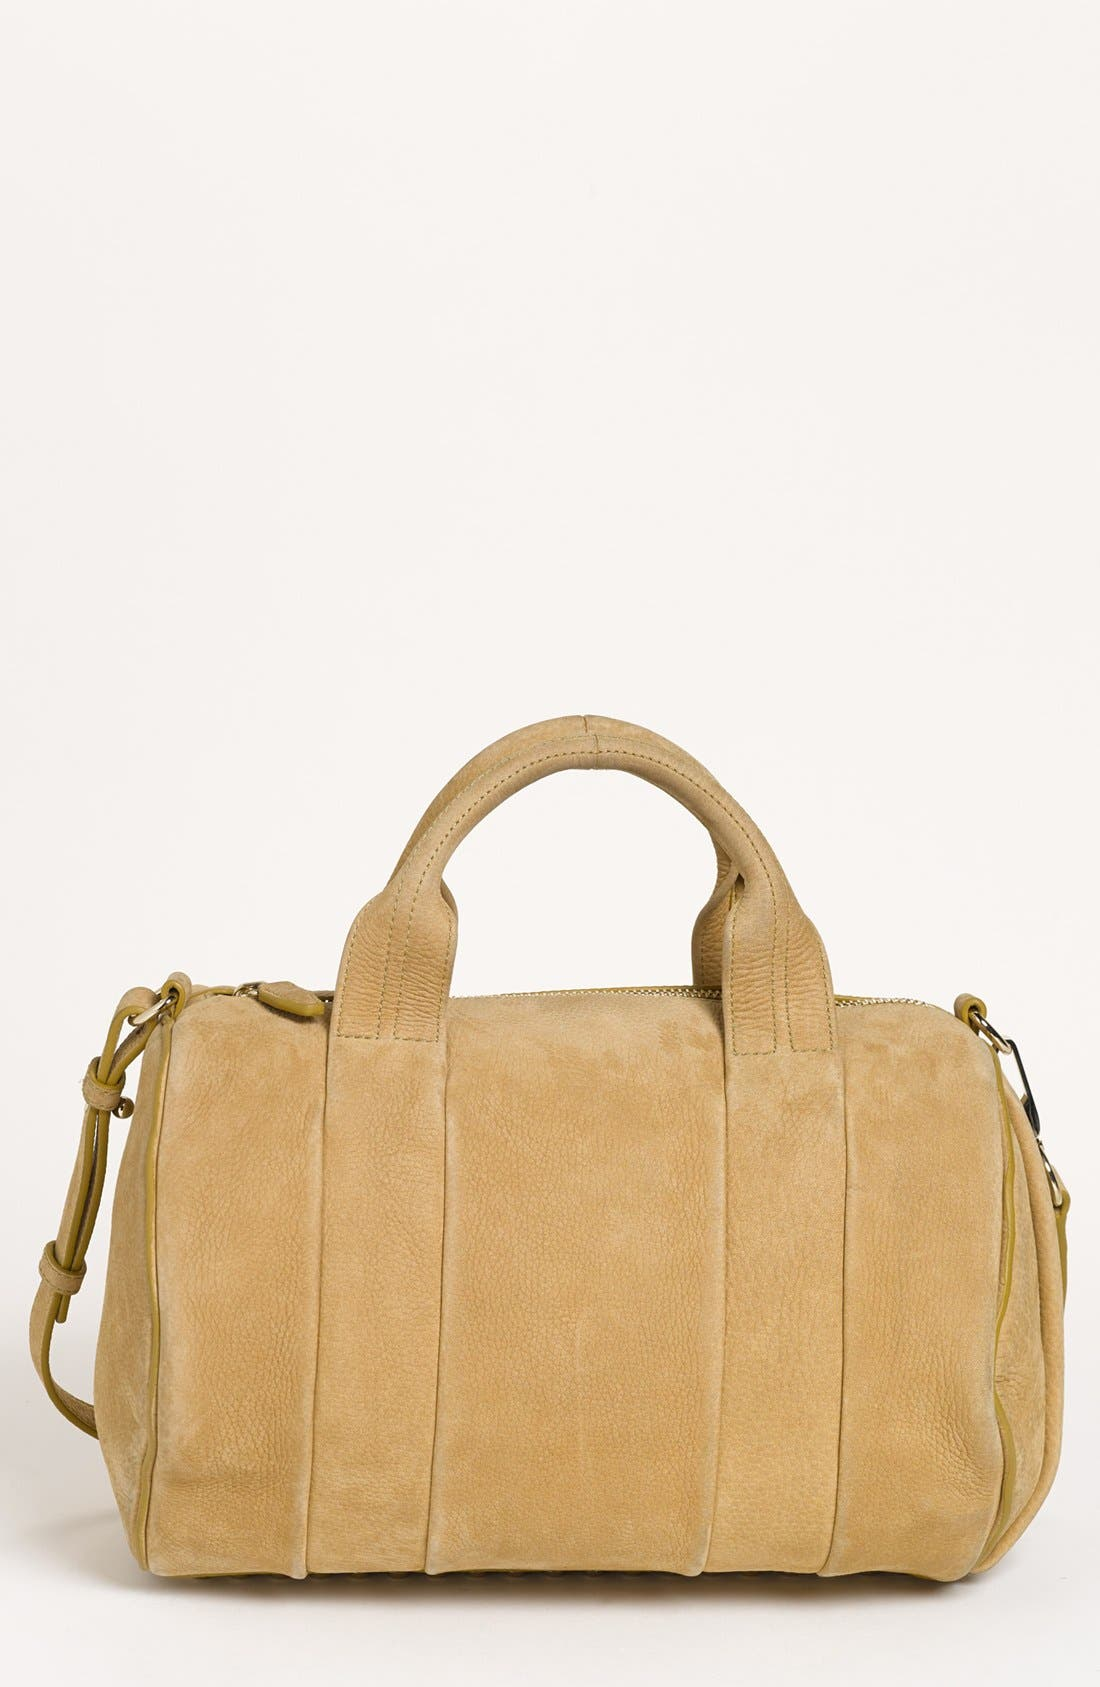 Alternate Image 1 Selected - Alexander Wang 'Rocco Dumbo Slick - Pale Gold' Leather Satchel